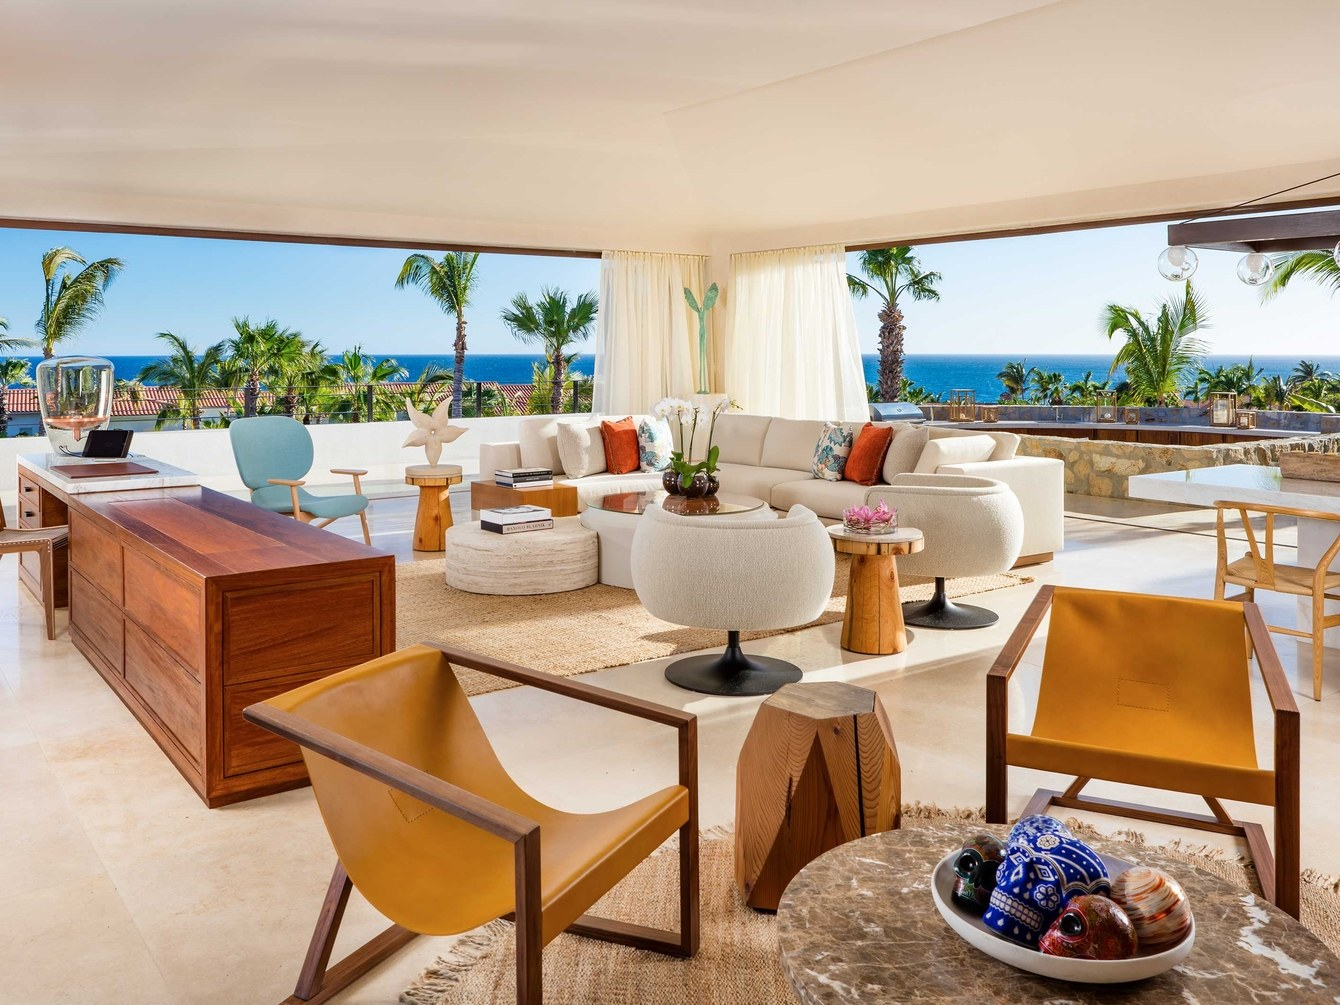 The Most Expensive Suite at Cabo's One&Only Palmilla Resort by AD luxury furniture collection 7 New Additions to LUXXU's Luxury Furniture Collection You Must See The Most Expensive Suite at Cabo   s OneOnly Palmilla Resort by AD cover luxury furniture collection 7 New Additions to LUXXU's Luxury Furniture Collection You Must See The Most Expensive Suite at Cabo E2 80 99s OneOnly Palmilla Resort by AD cover